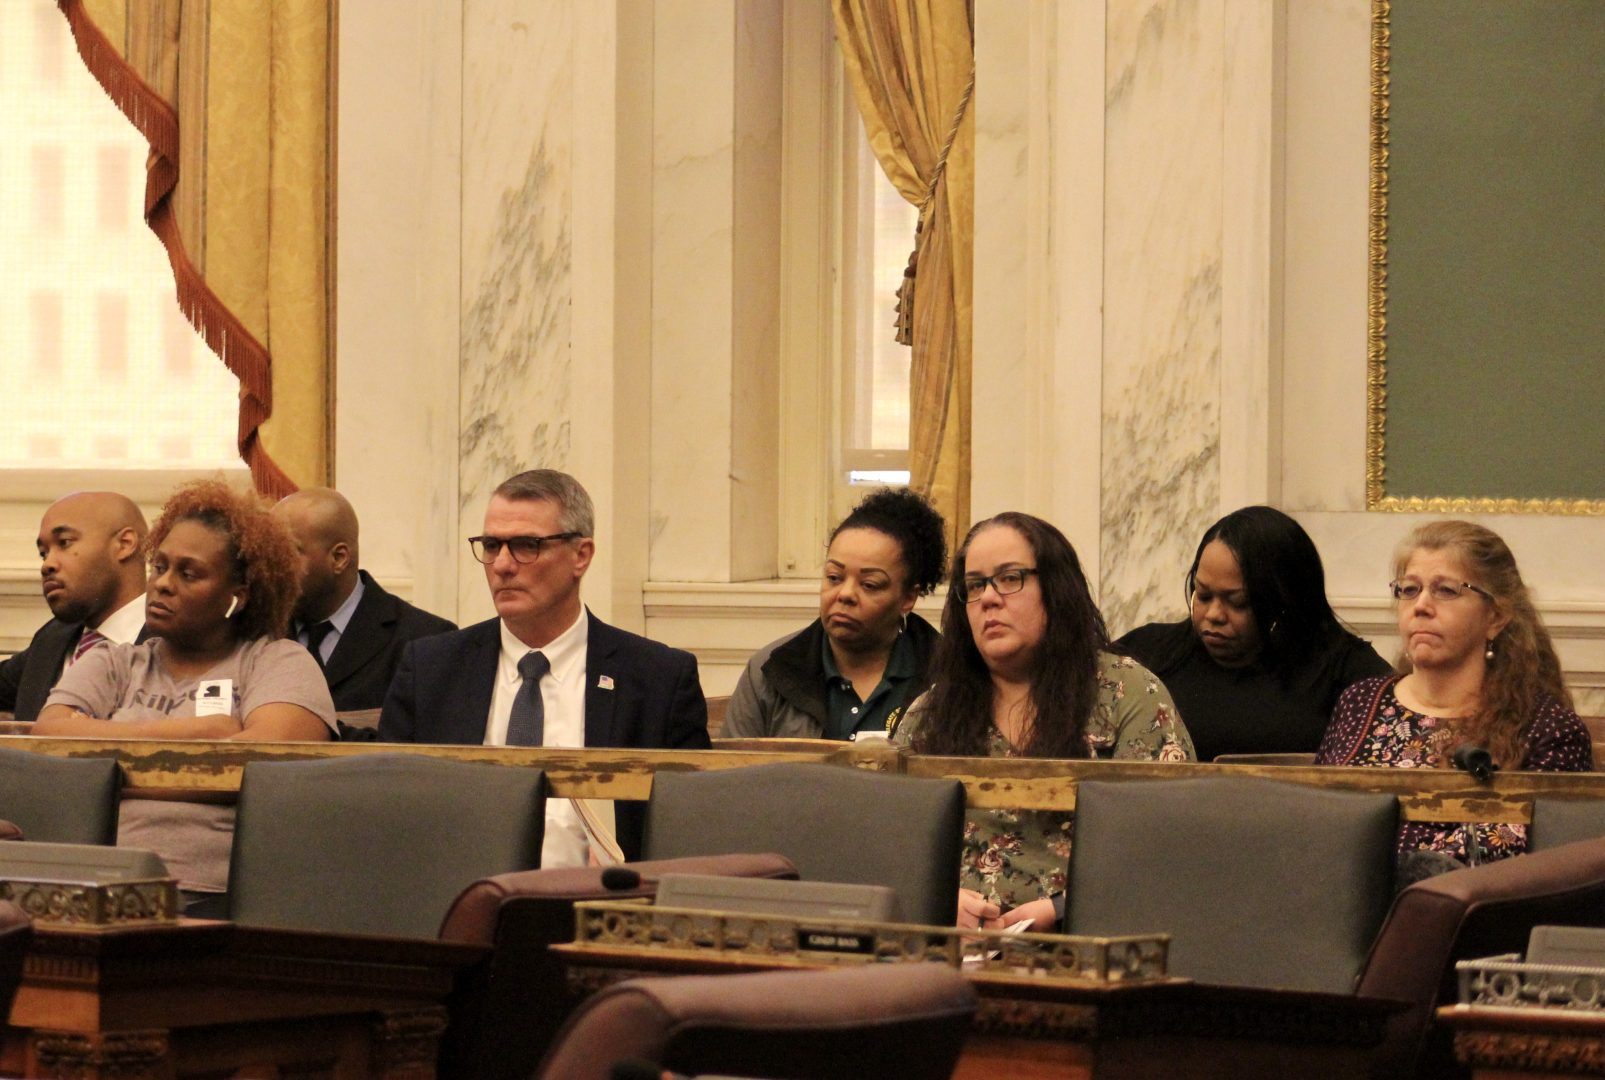 Dispatchers and other individuals sit in the audience section of the City Council chamber and observe police and fire officers testify at a hearing on March 11.